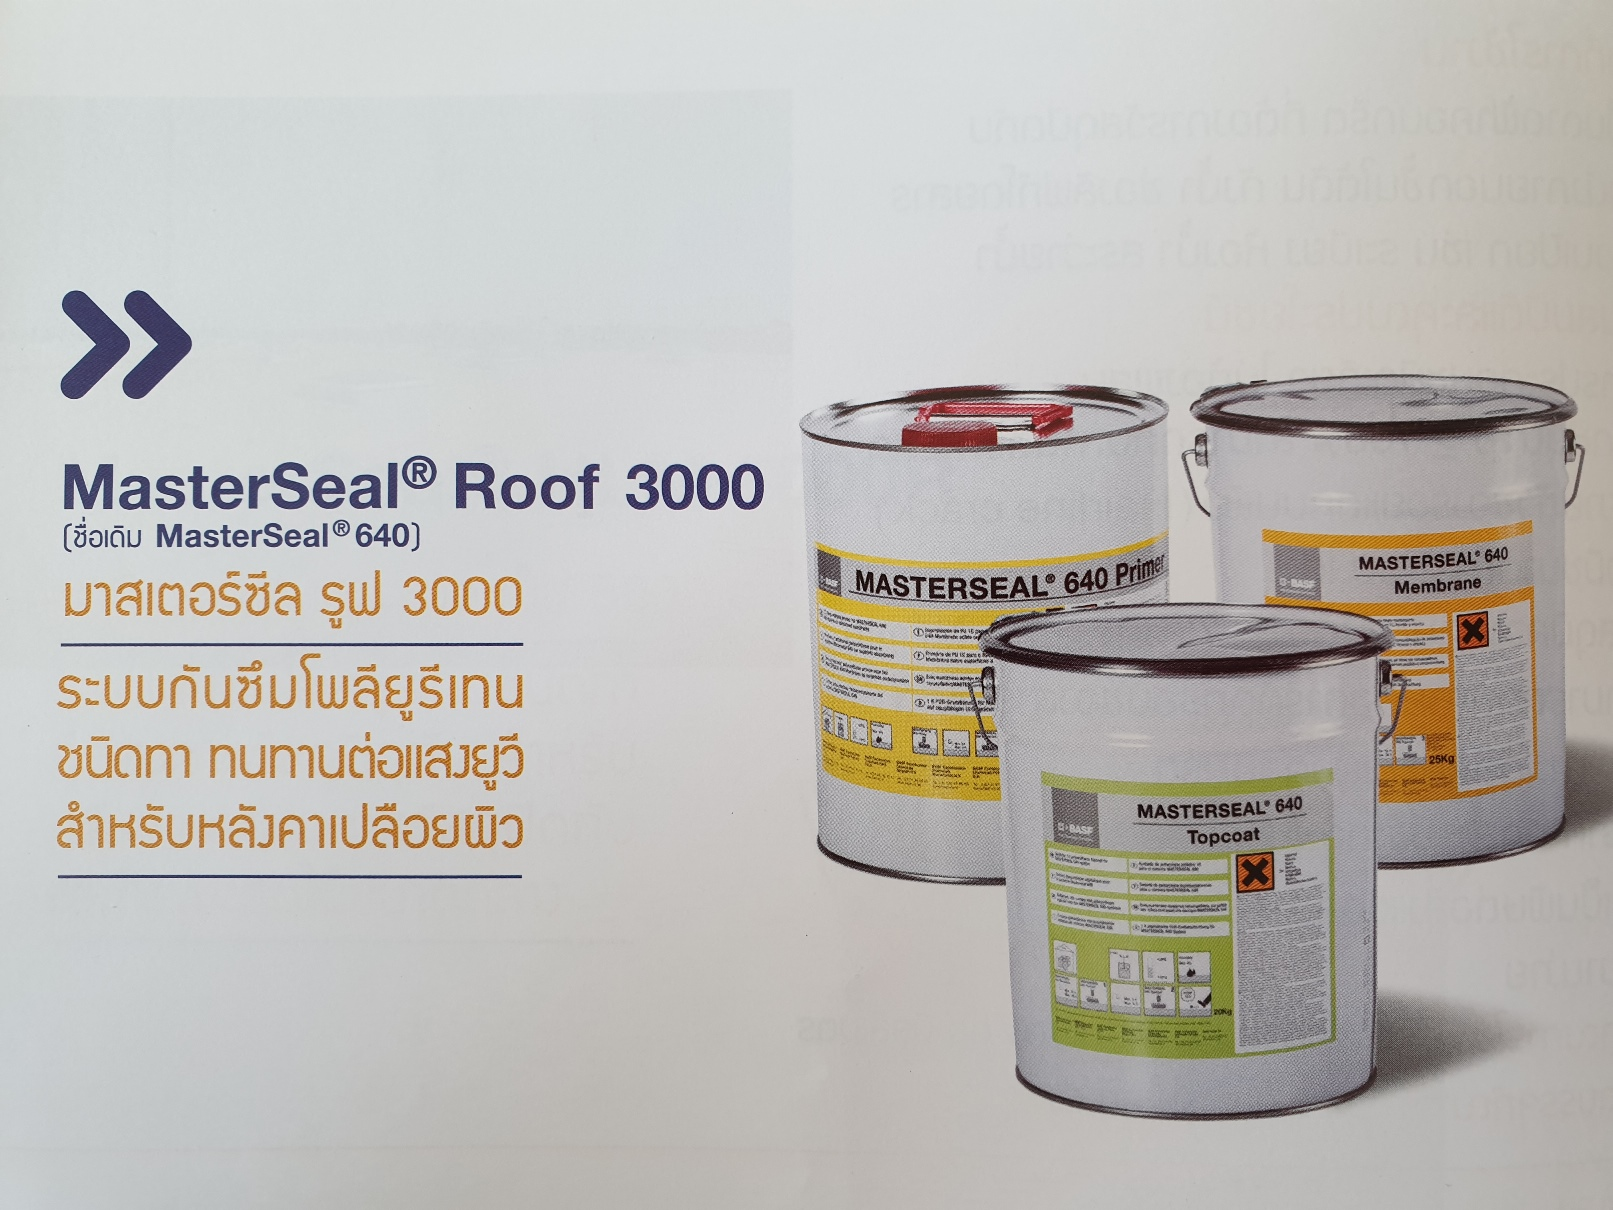 BASF MastersealRoof 3000 System